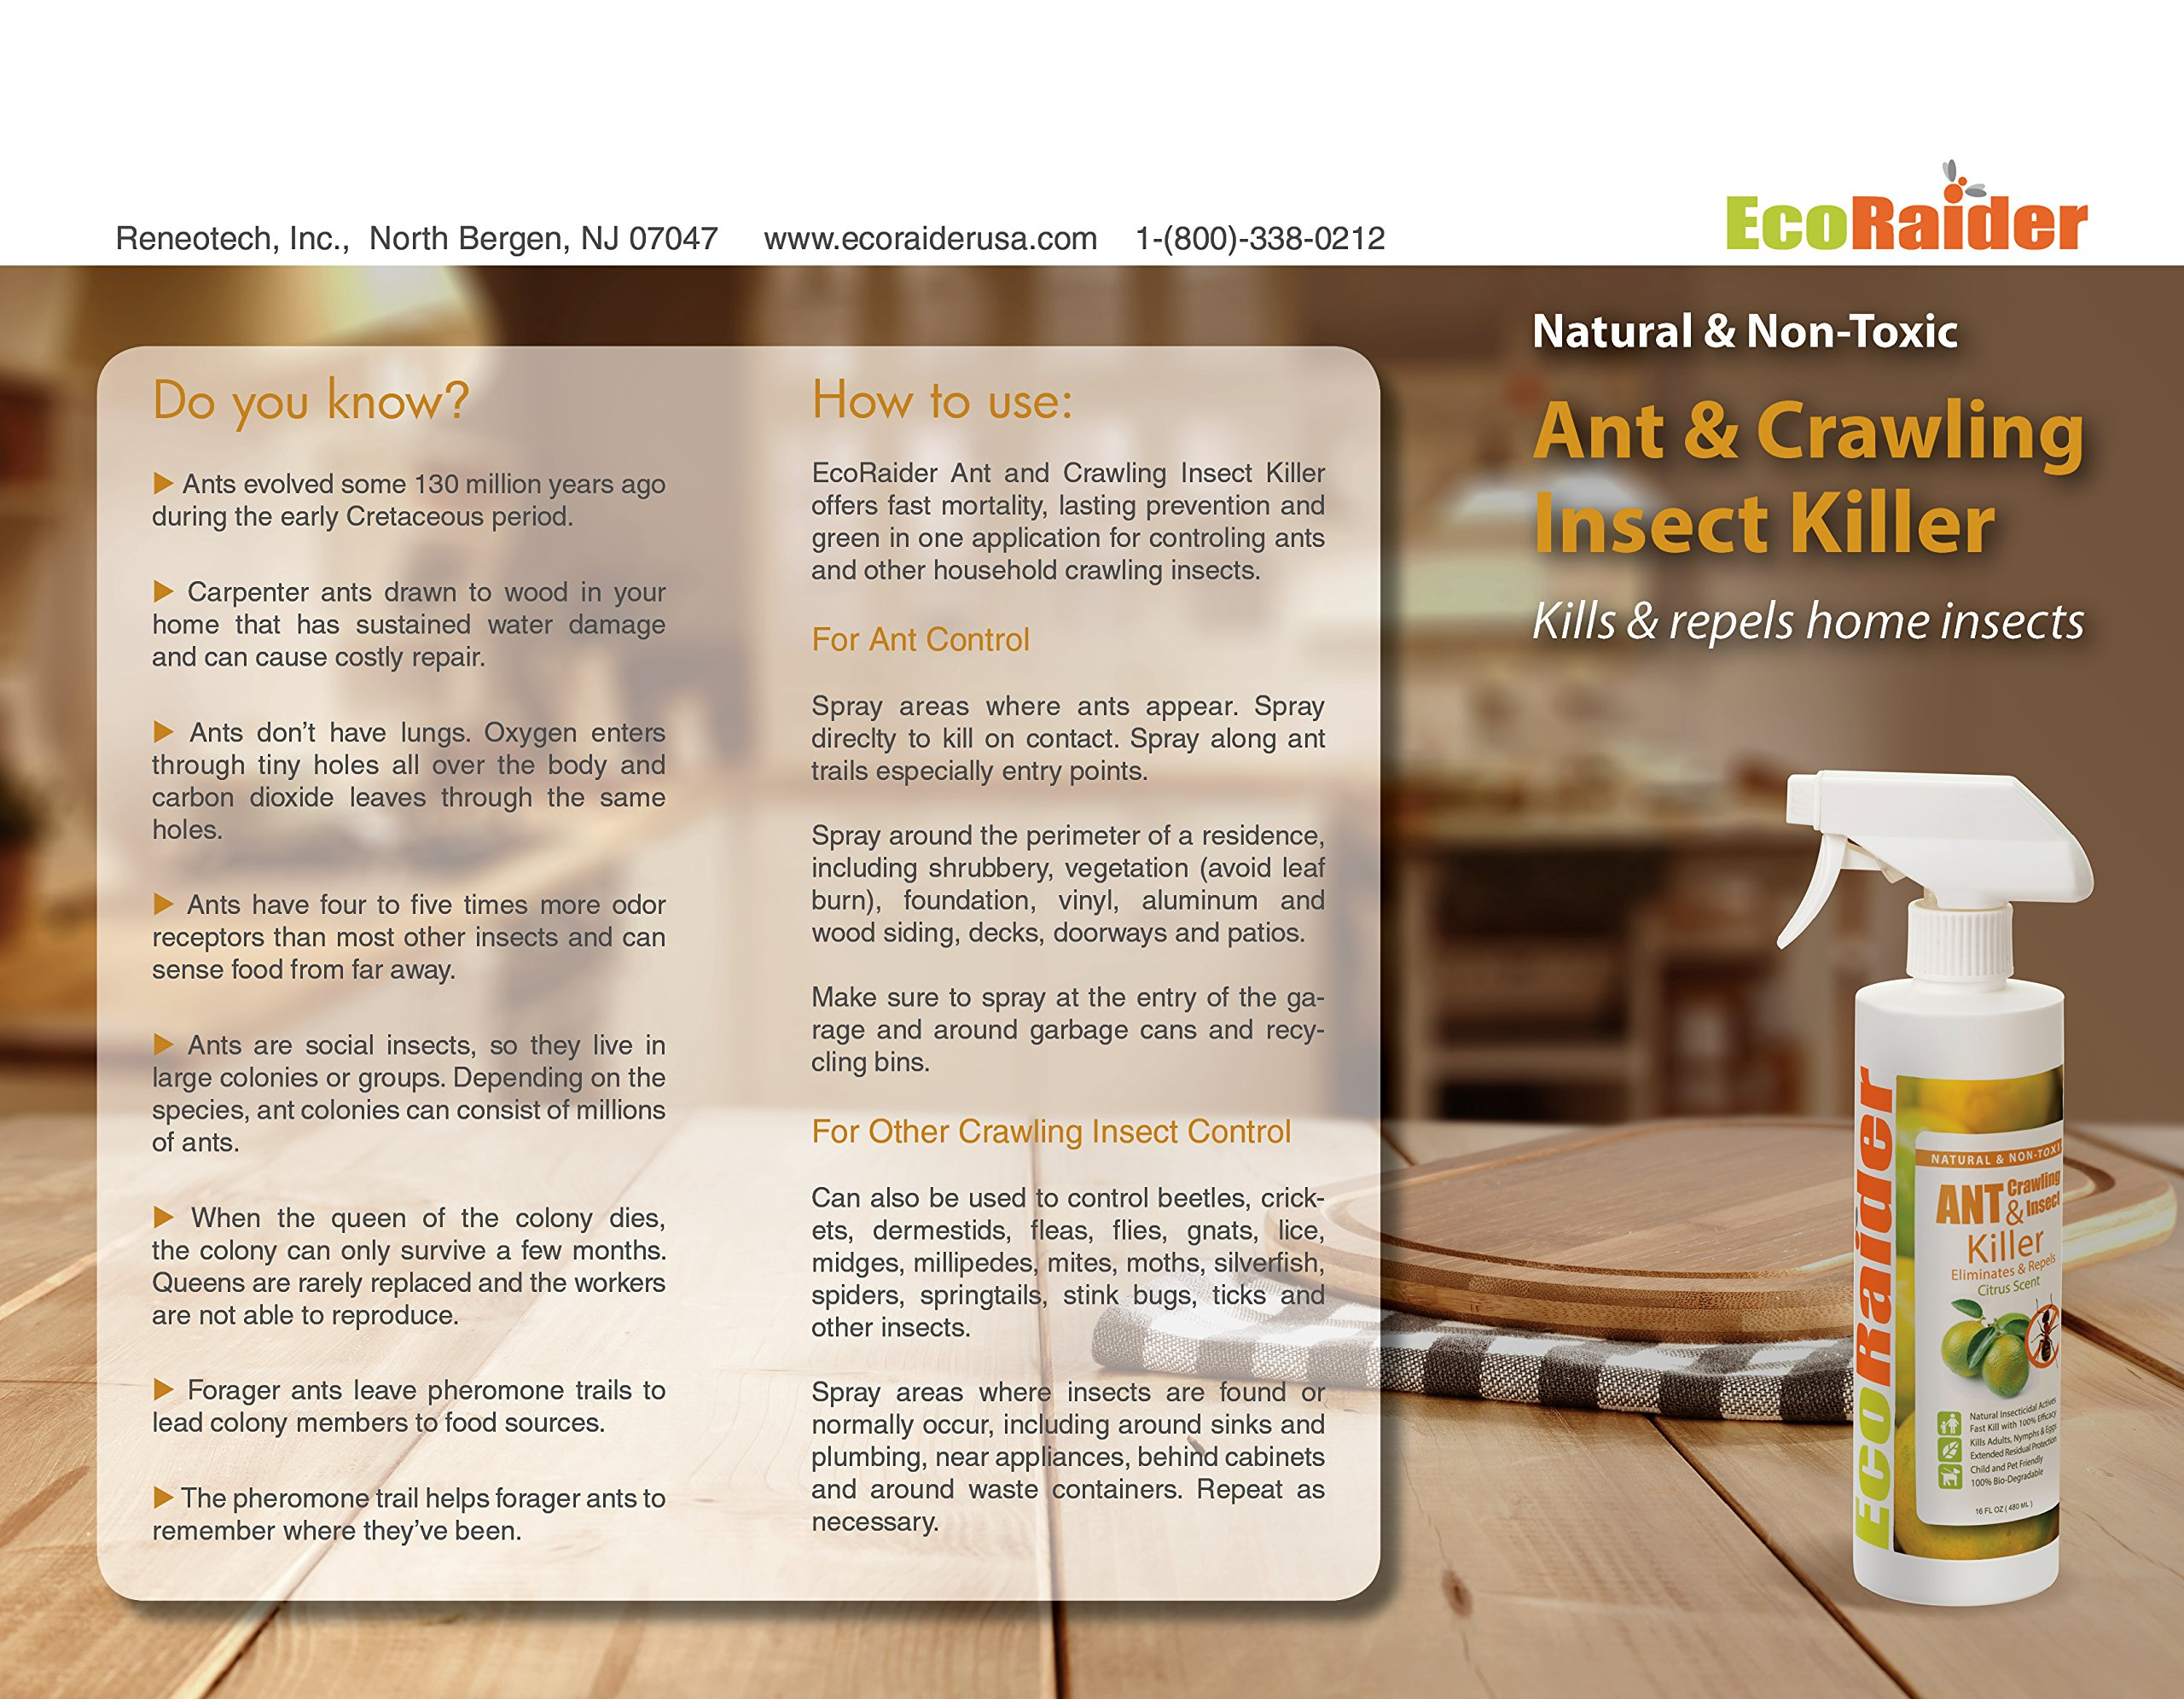 EcoRaider Ant Killer & Crawling Insect Killer (Citrus Scent) 16 OZ, Natural & Non-Toxic by EcoRaider (Image #1)